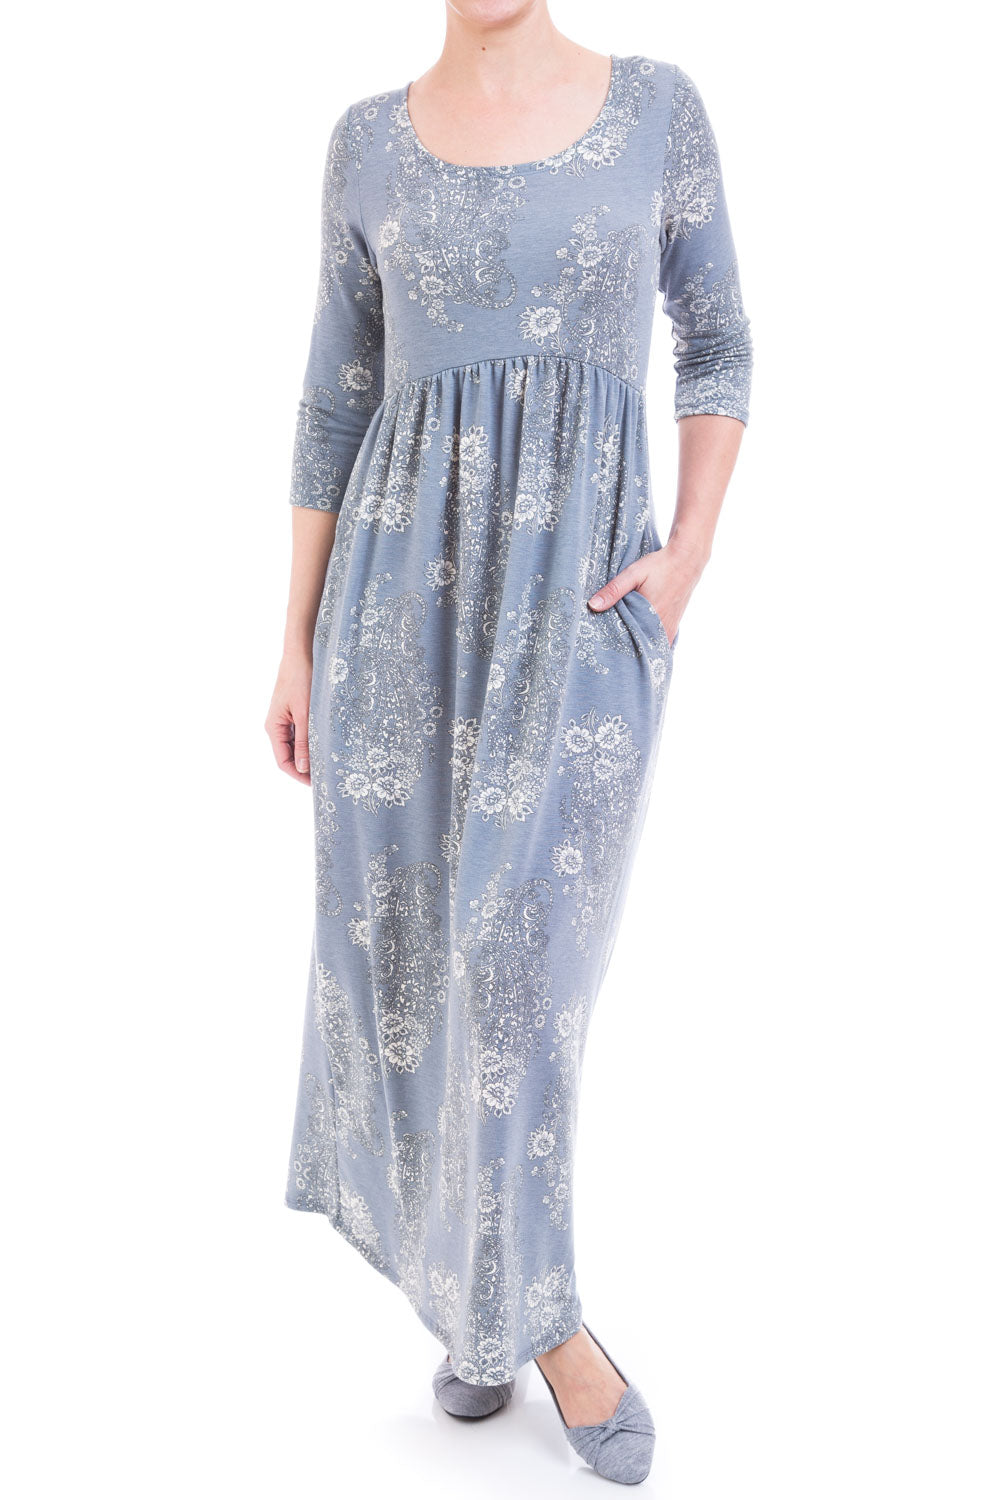 Type 2 Bennet Sisters Dress in Blue